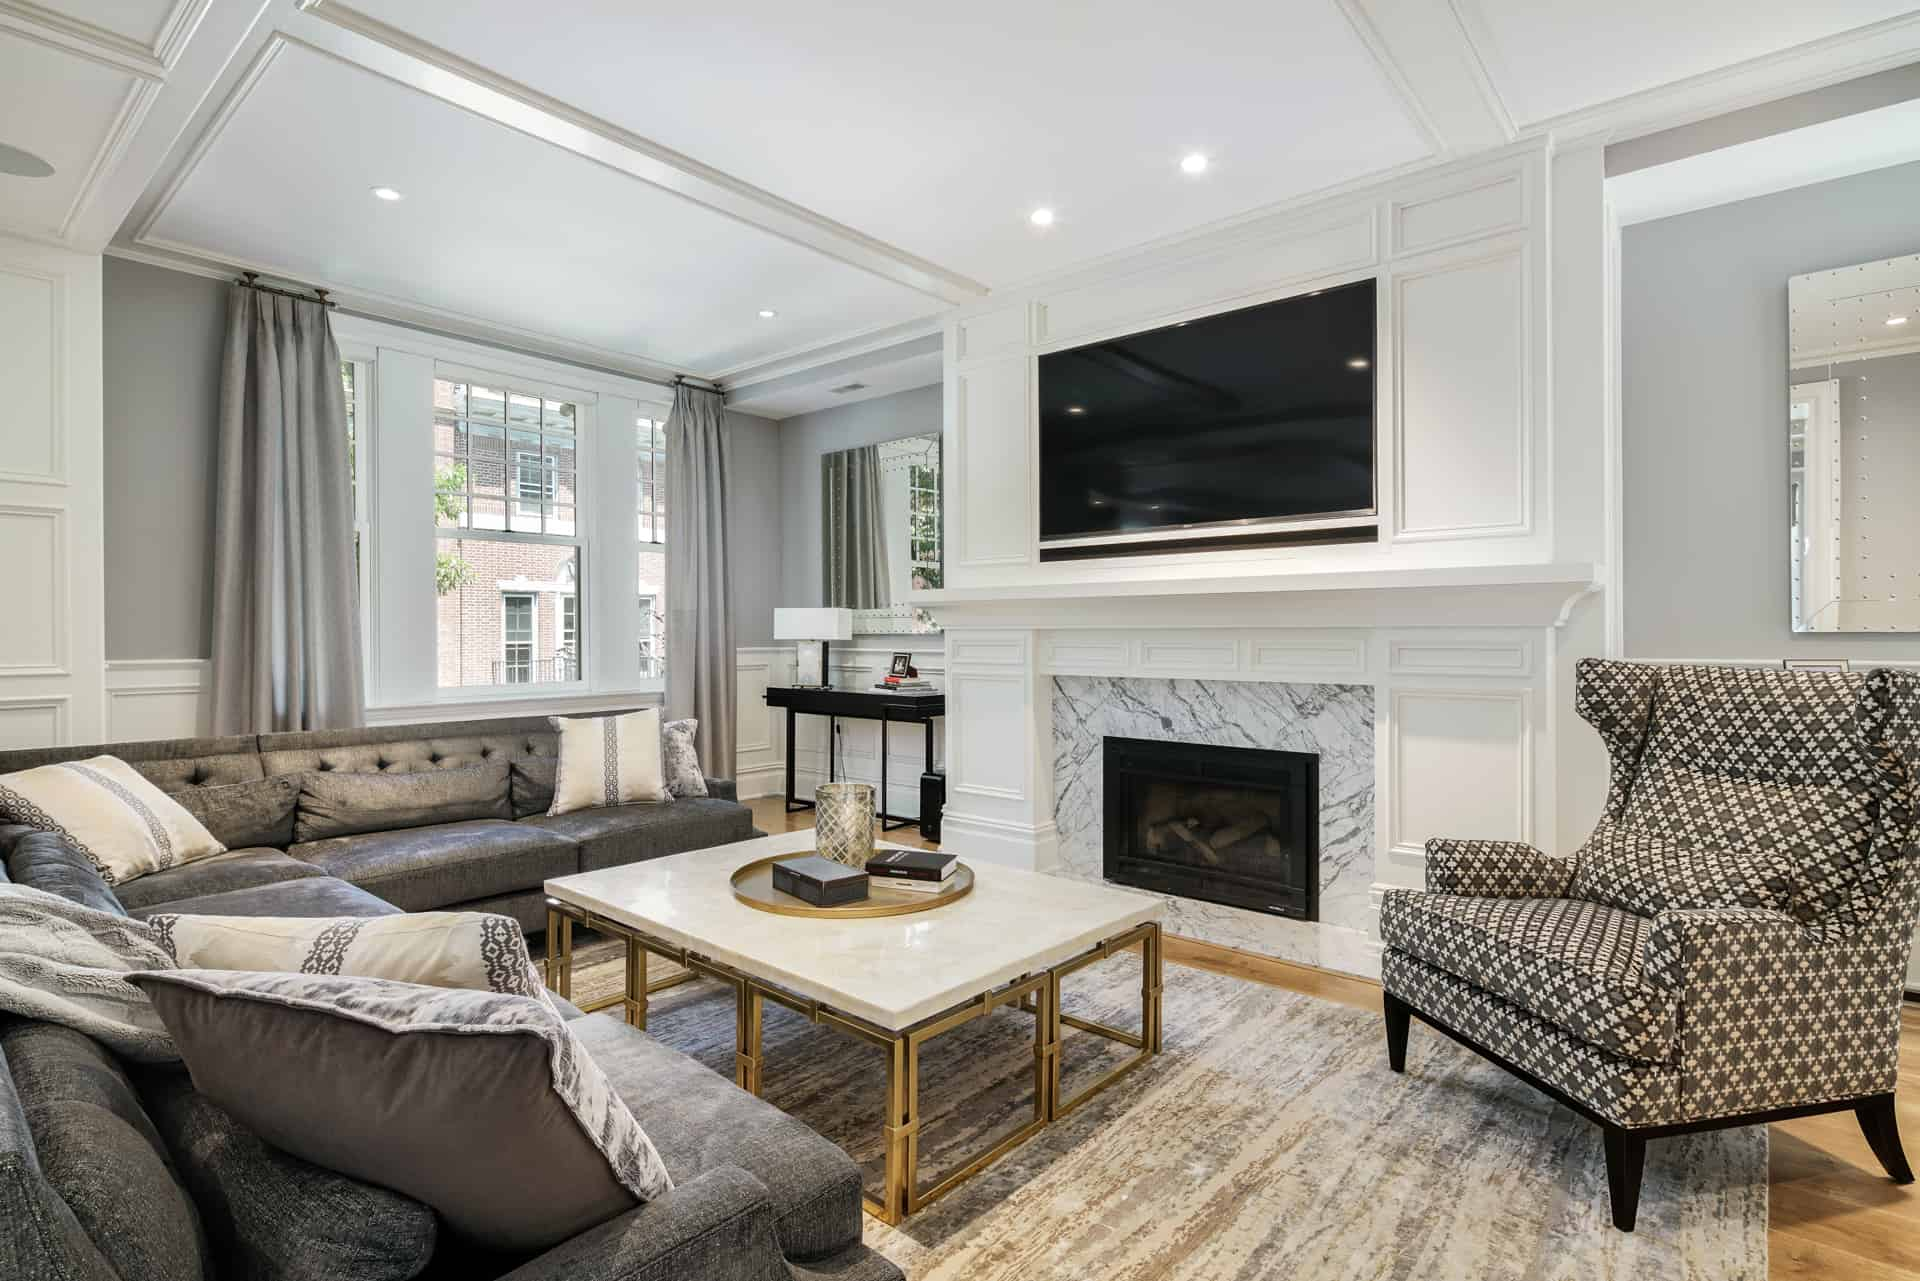 Real Estate Photograph of a Luxury Mansion on Spruce Street in Philadelphia, PA